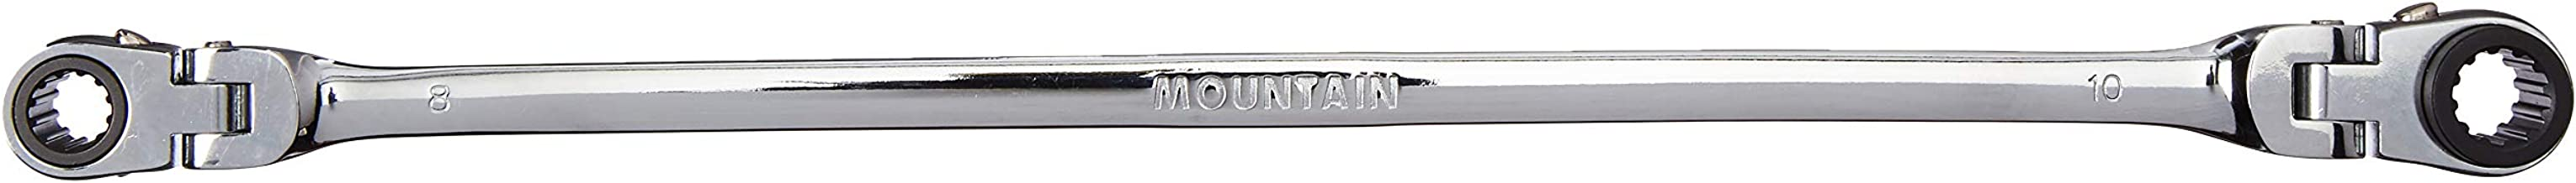 Mountain MTNRM810 Ratcheting Double Box Flex Wrench, 8x10mm